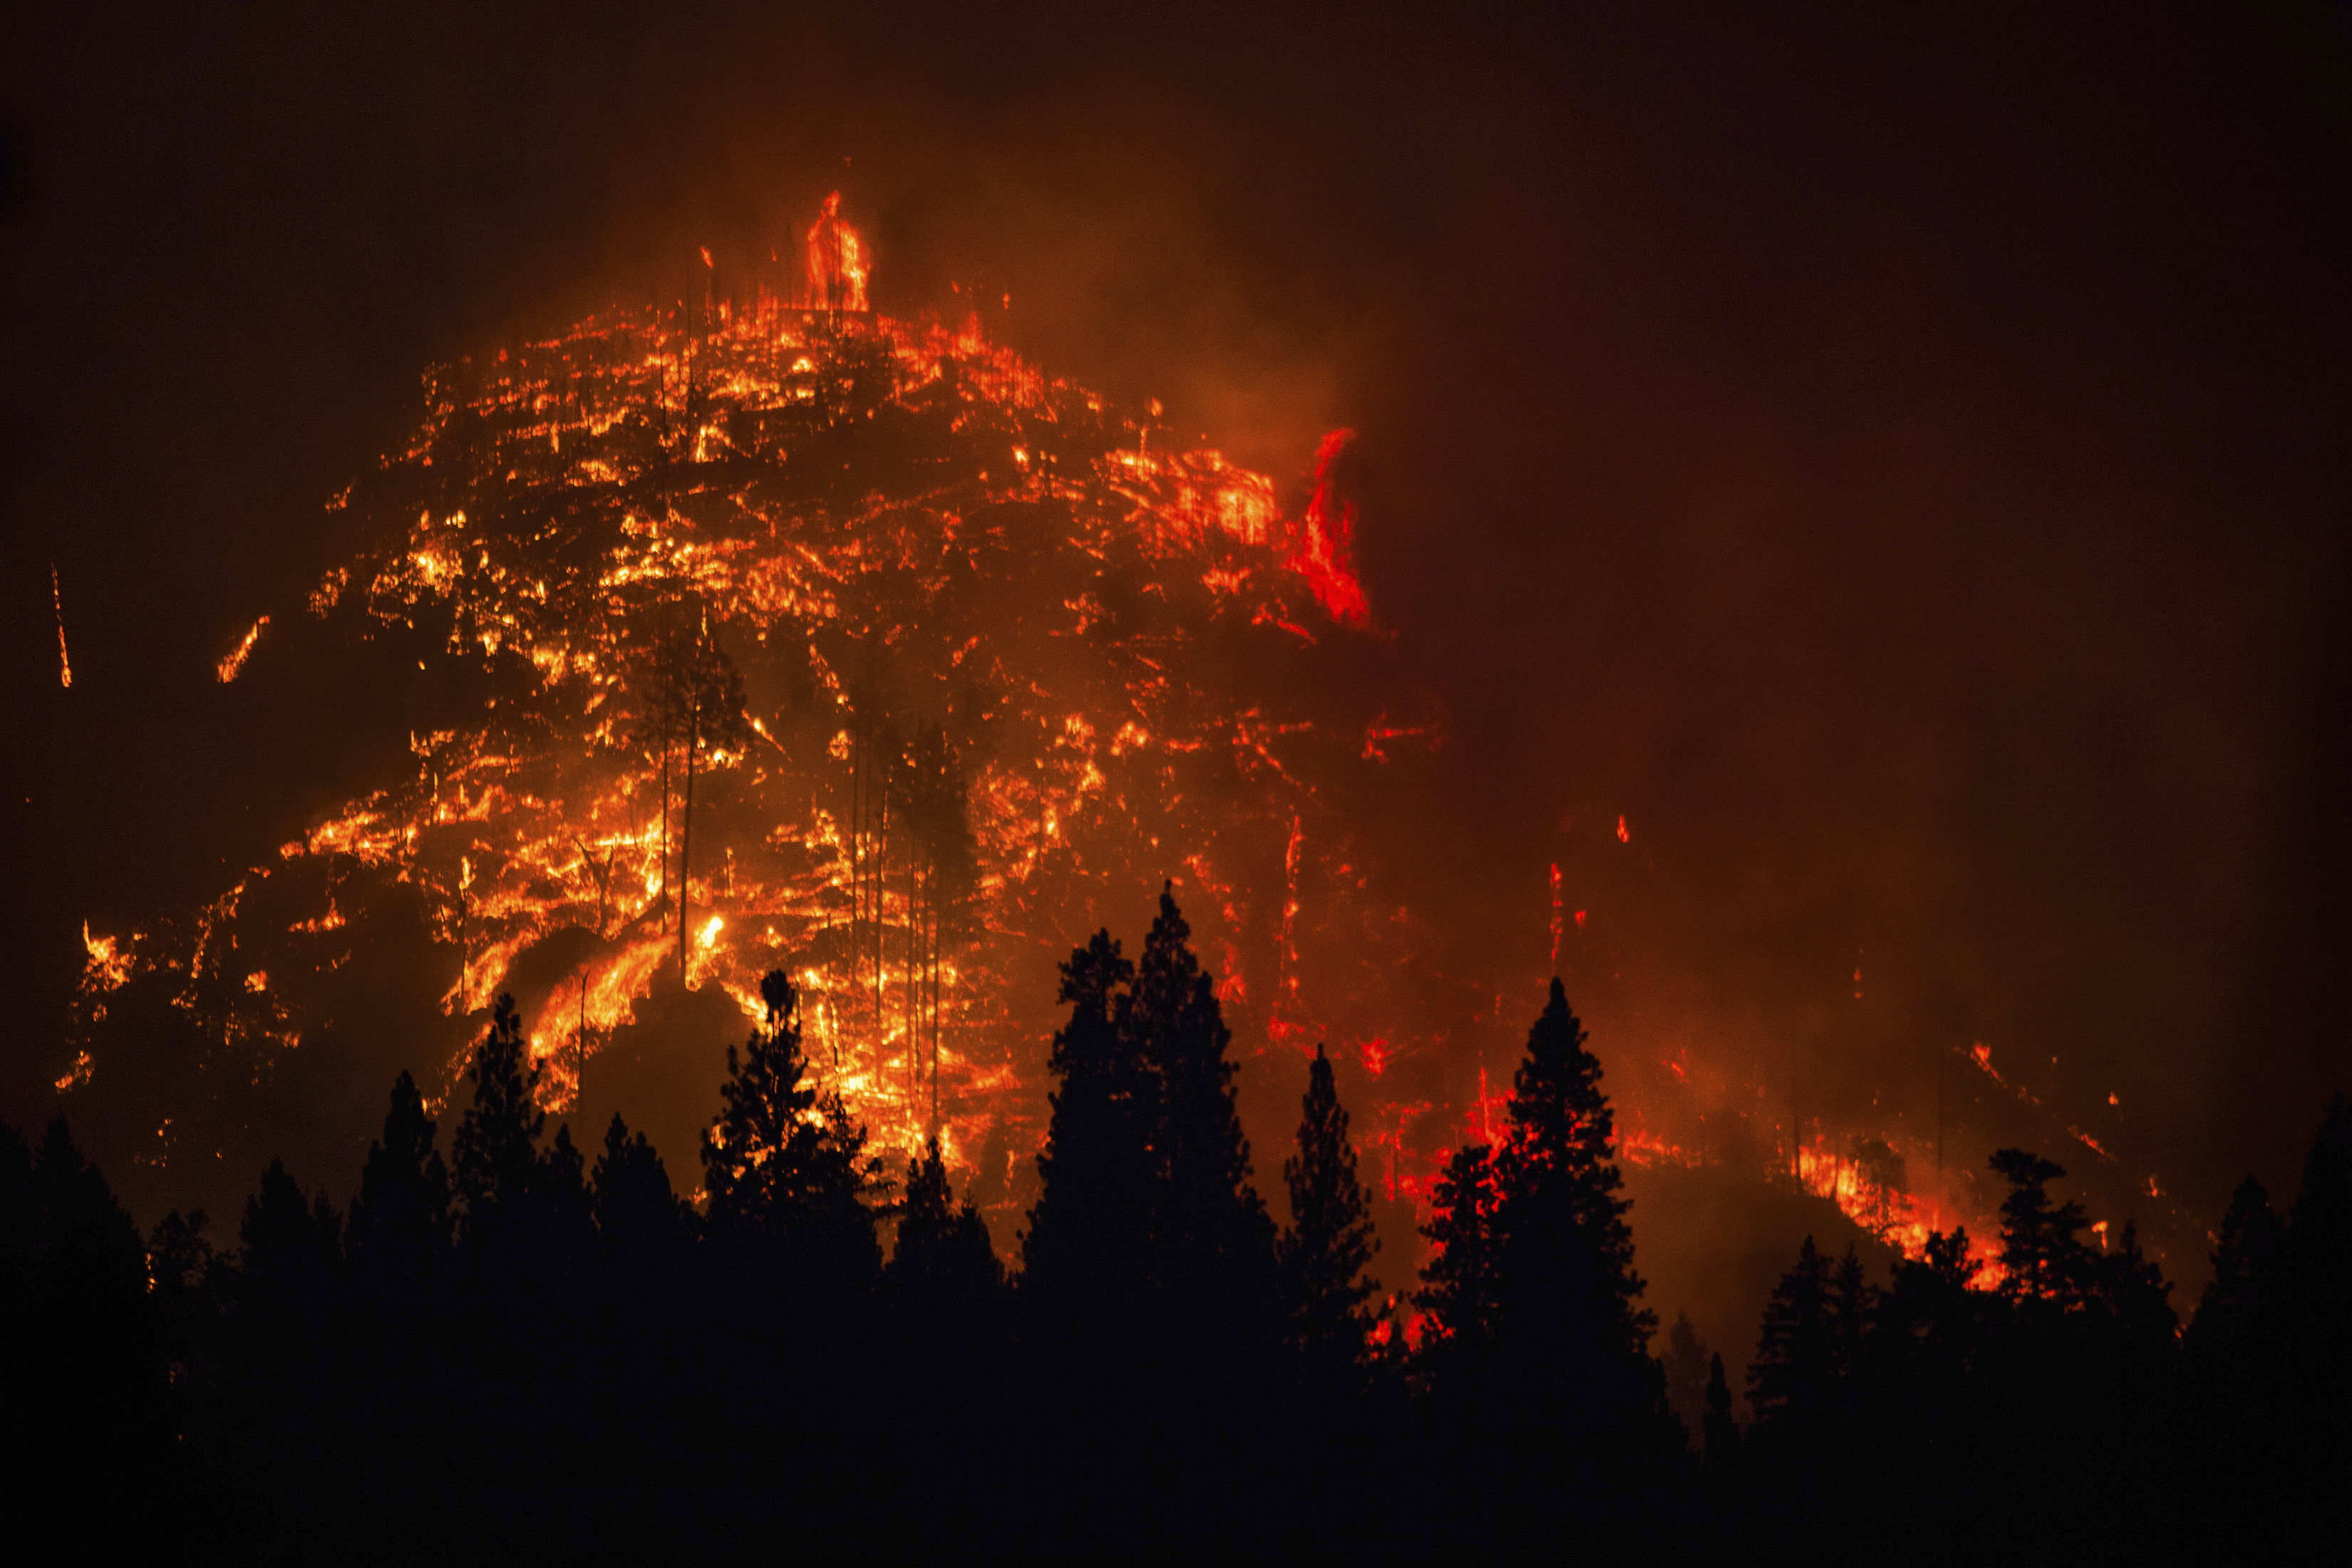 The Rim Fire burns near Yosemite National Park in Buck Meadows, Calif. on Aug. 24, 2013.